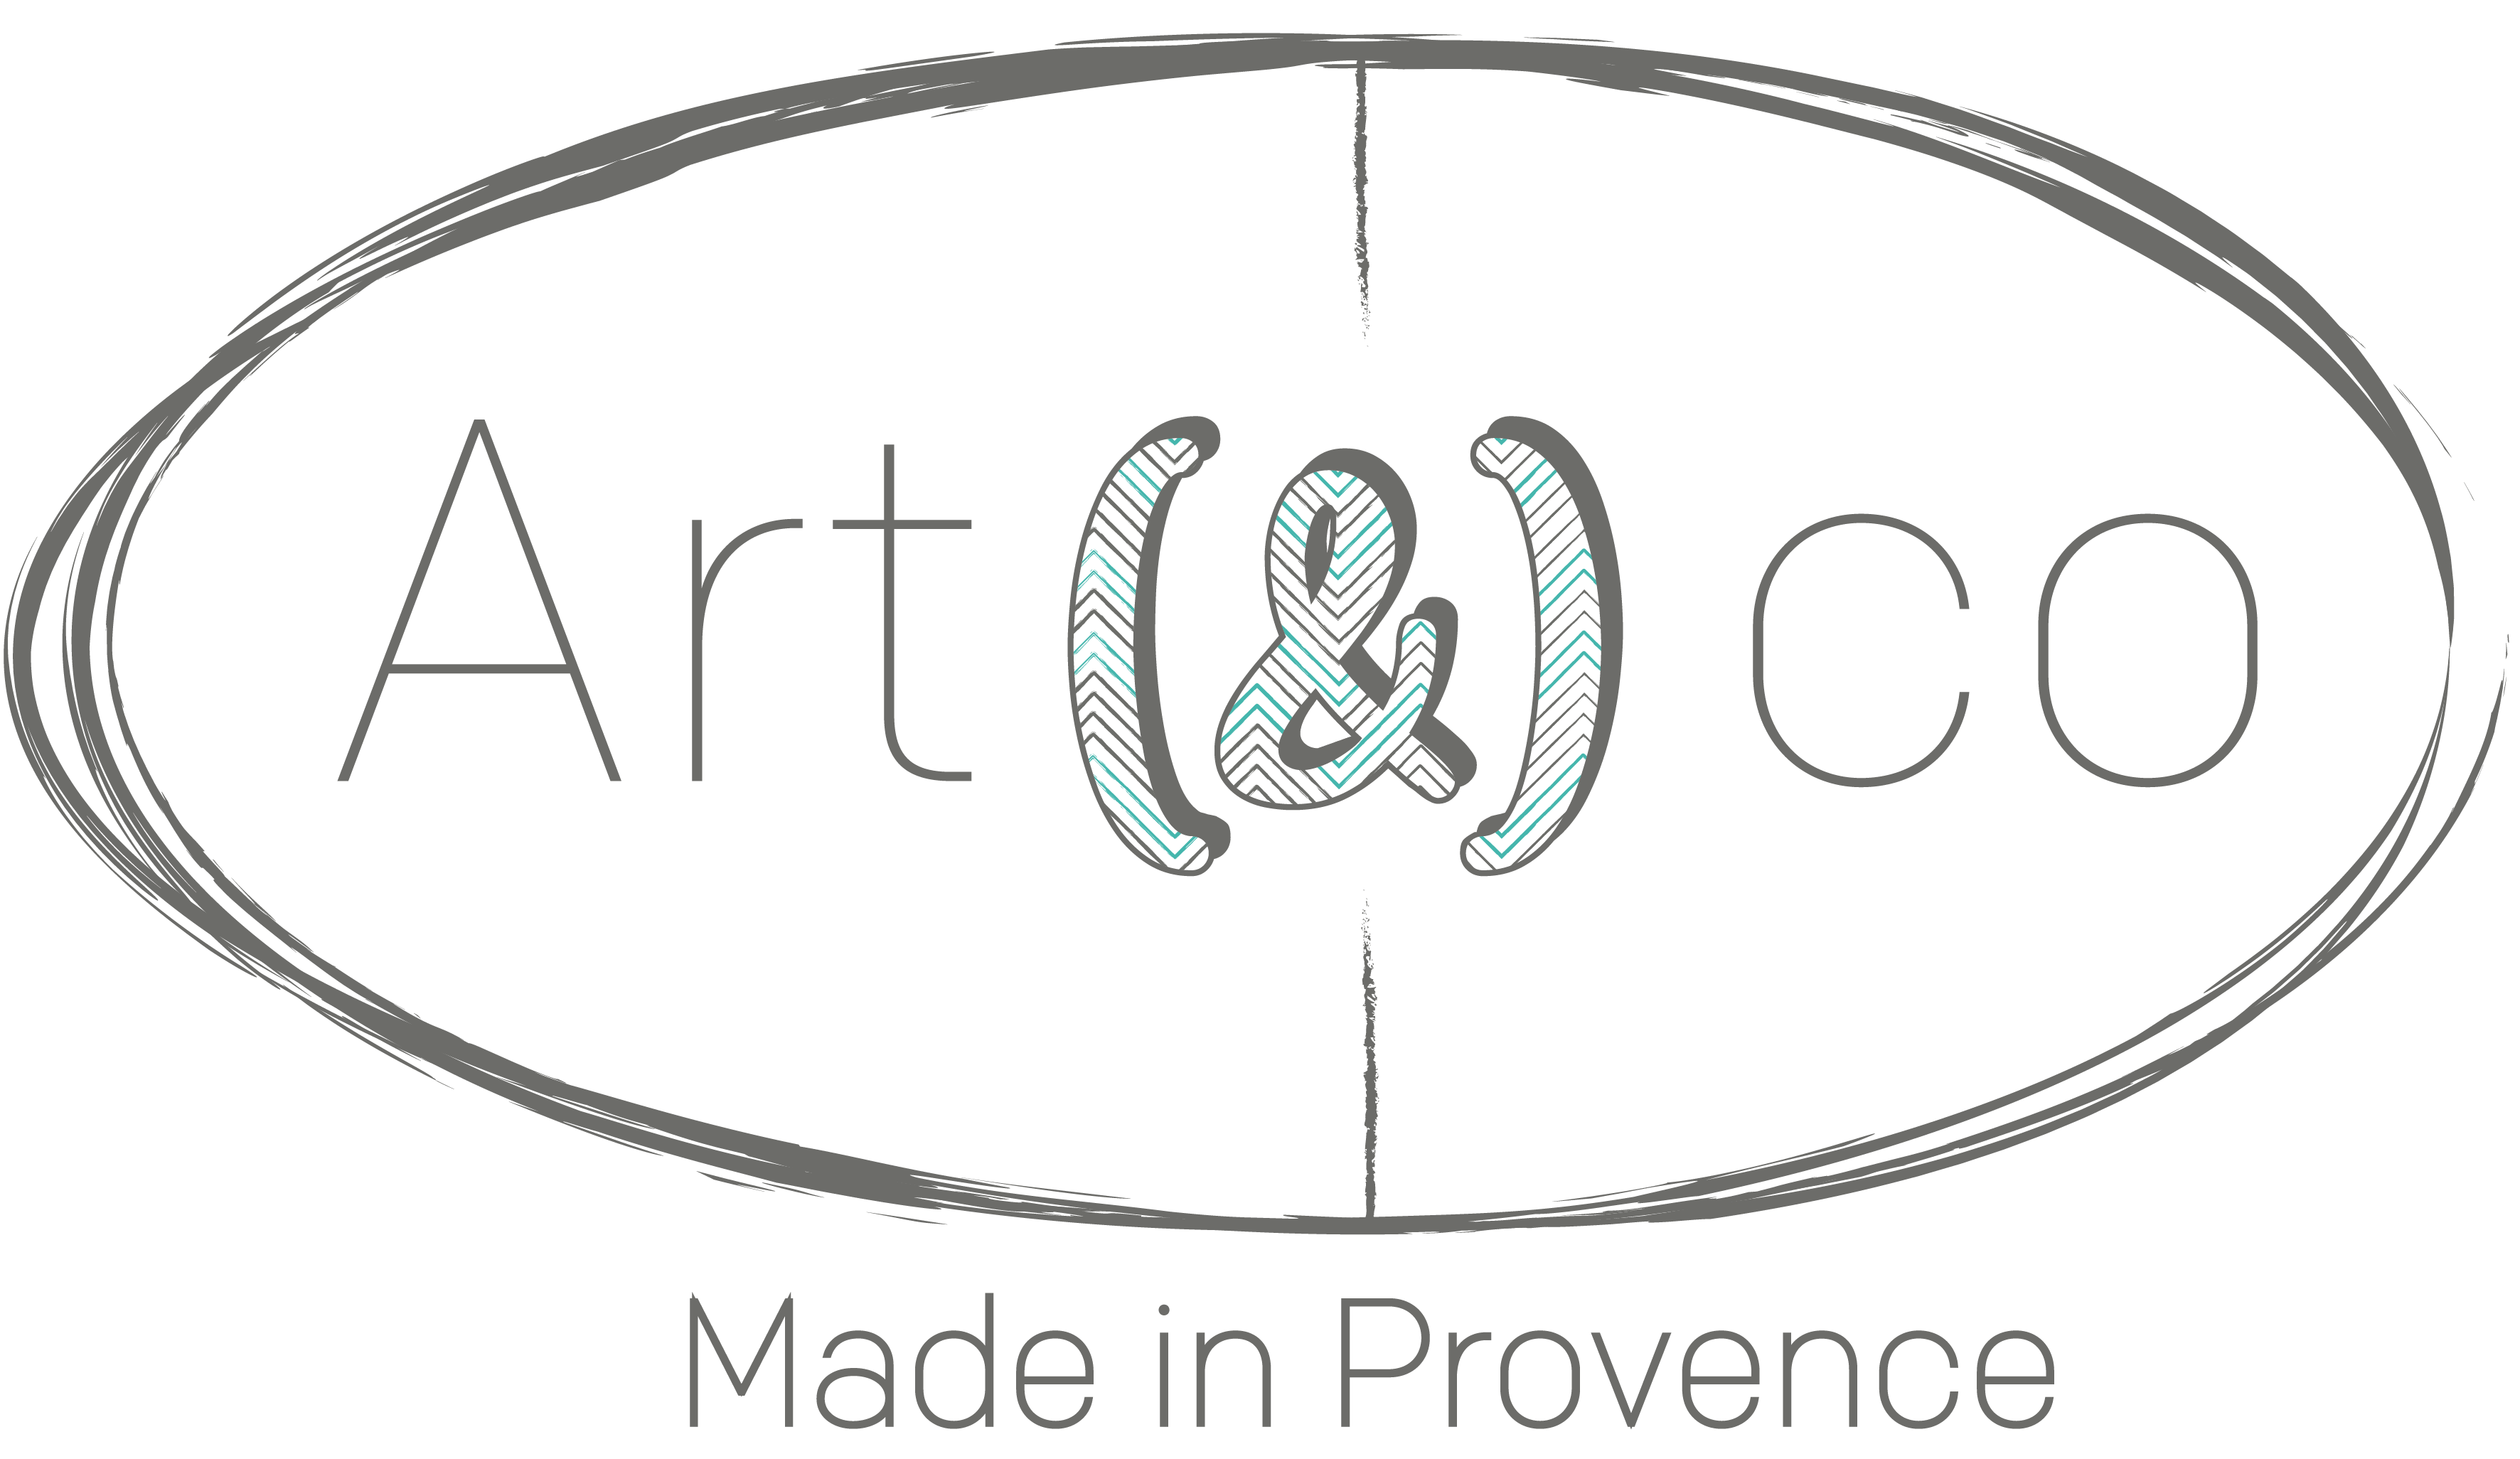 Art (&) co Made in Provence